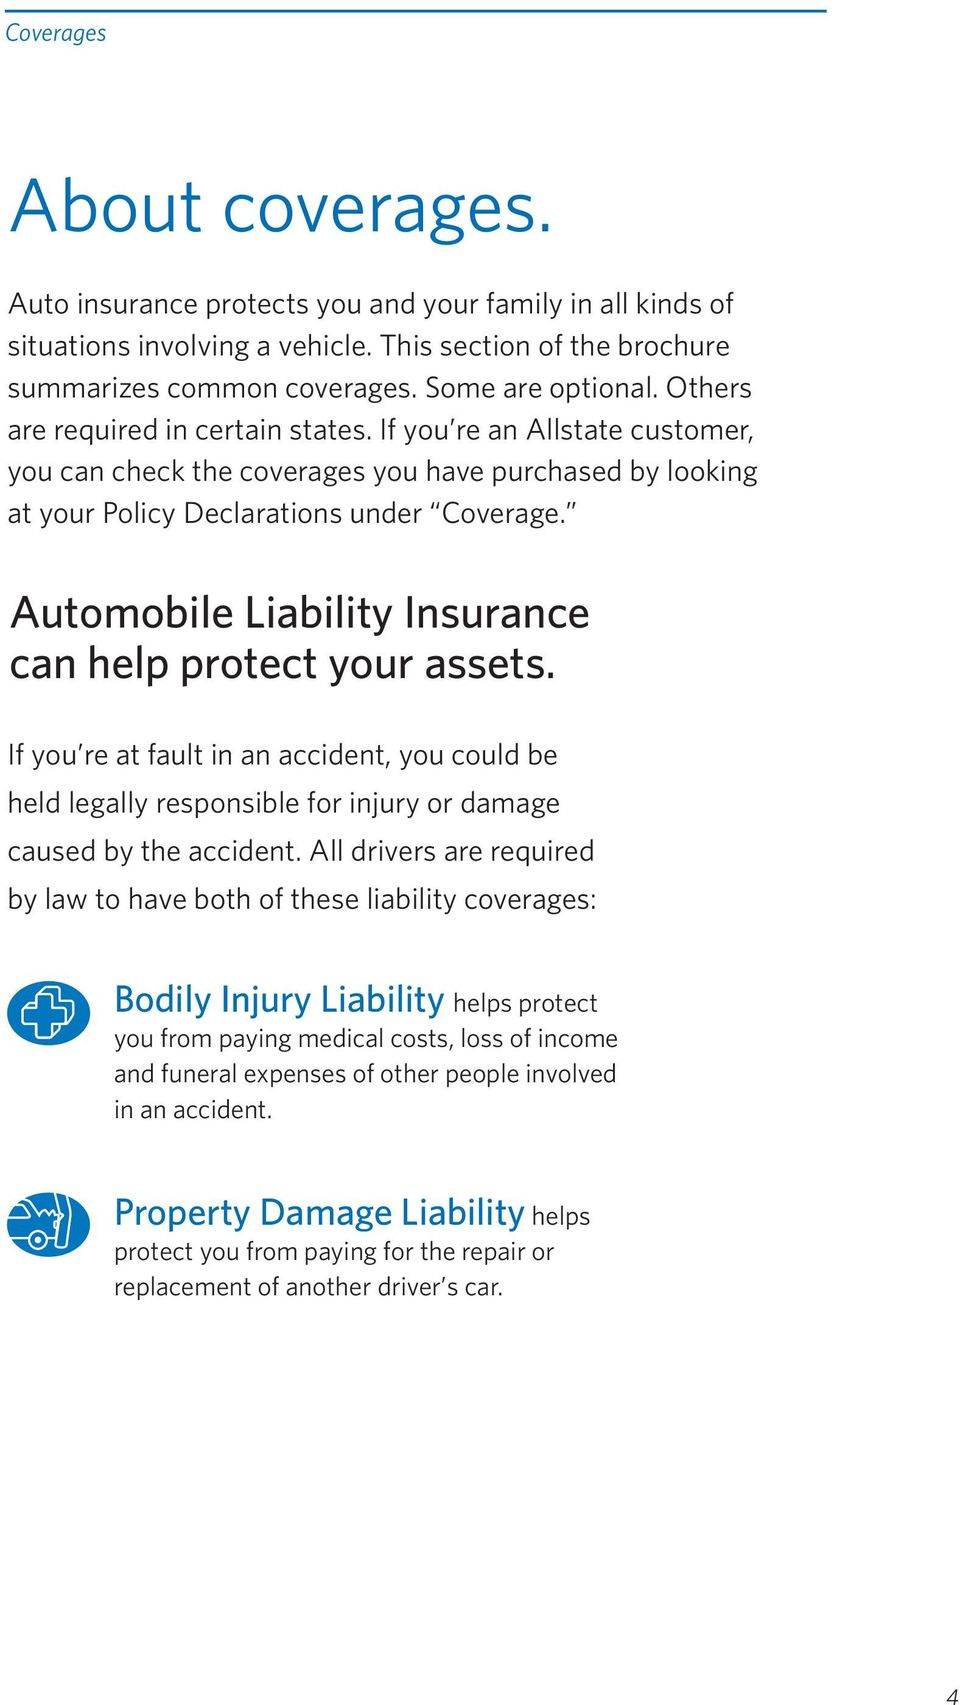 Automobile Liability Insurance can help protect your assets. If you re at fault in an accident, you could be held legally responsible for injury or damage caused by the accident.